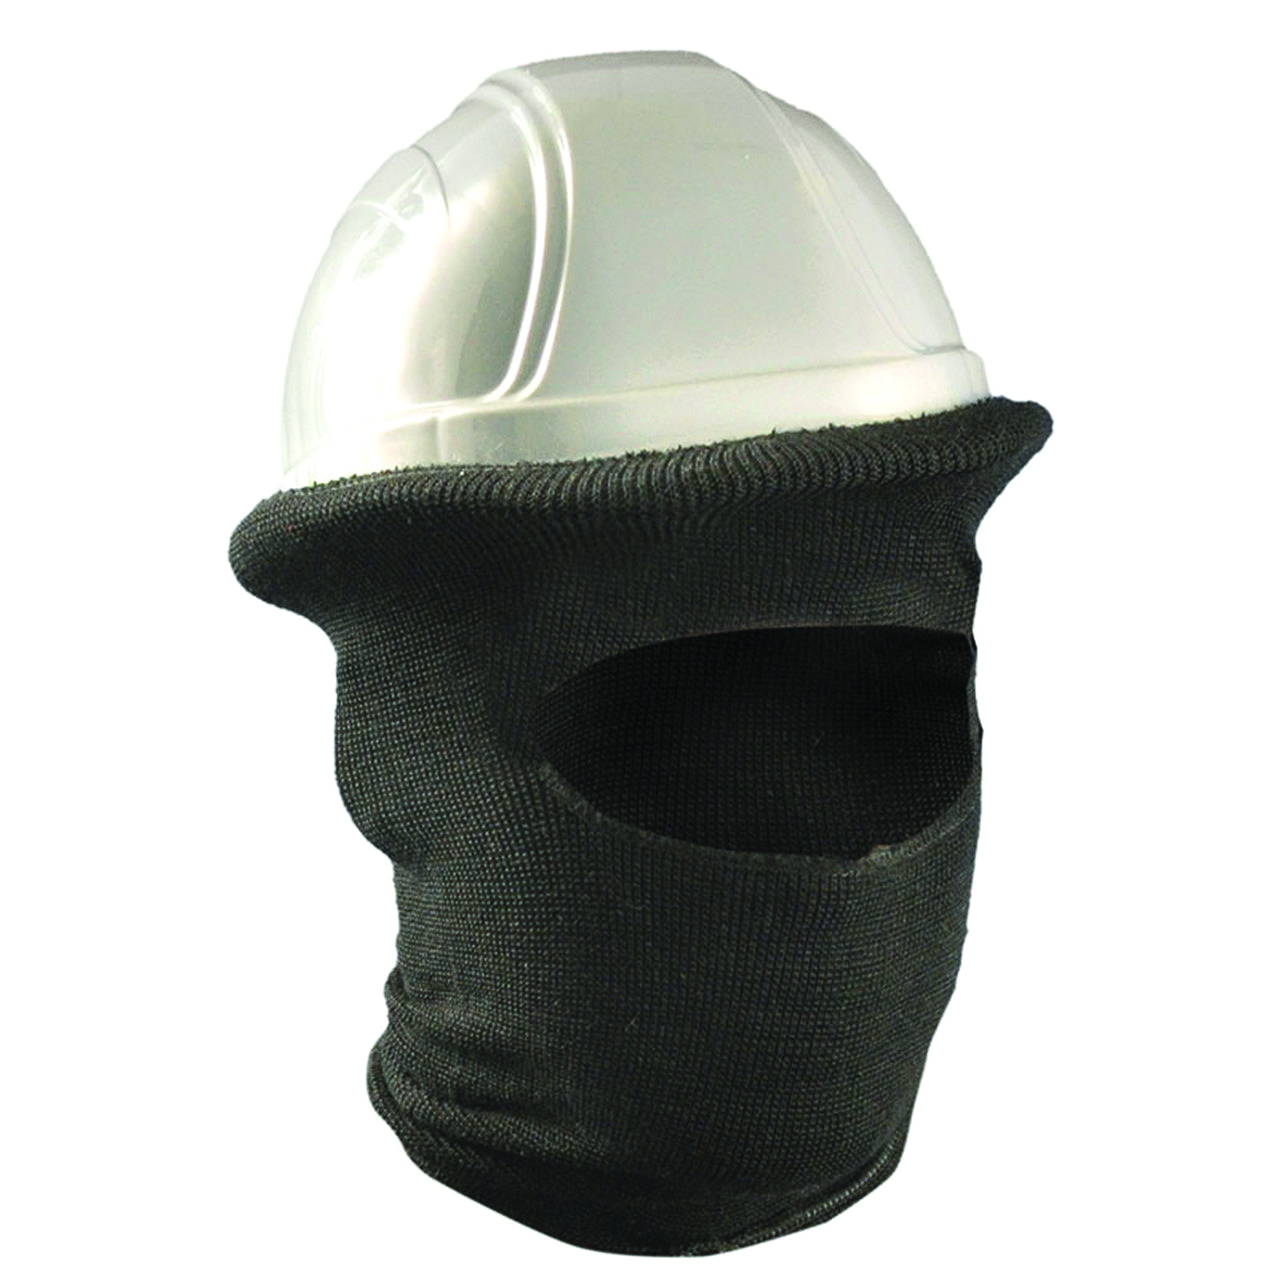 RK900FR - Classic Flame-Resistant Hard Hat Tube Liner-Classic Flame-Resistant Hard Hat Tube Liner-Navy----UOM: 1/EA